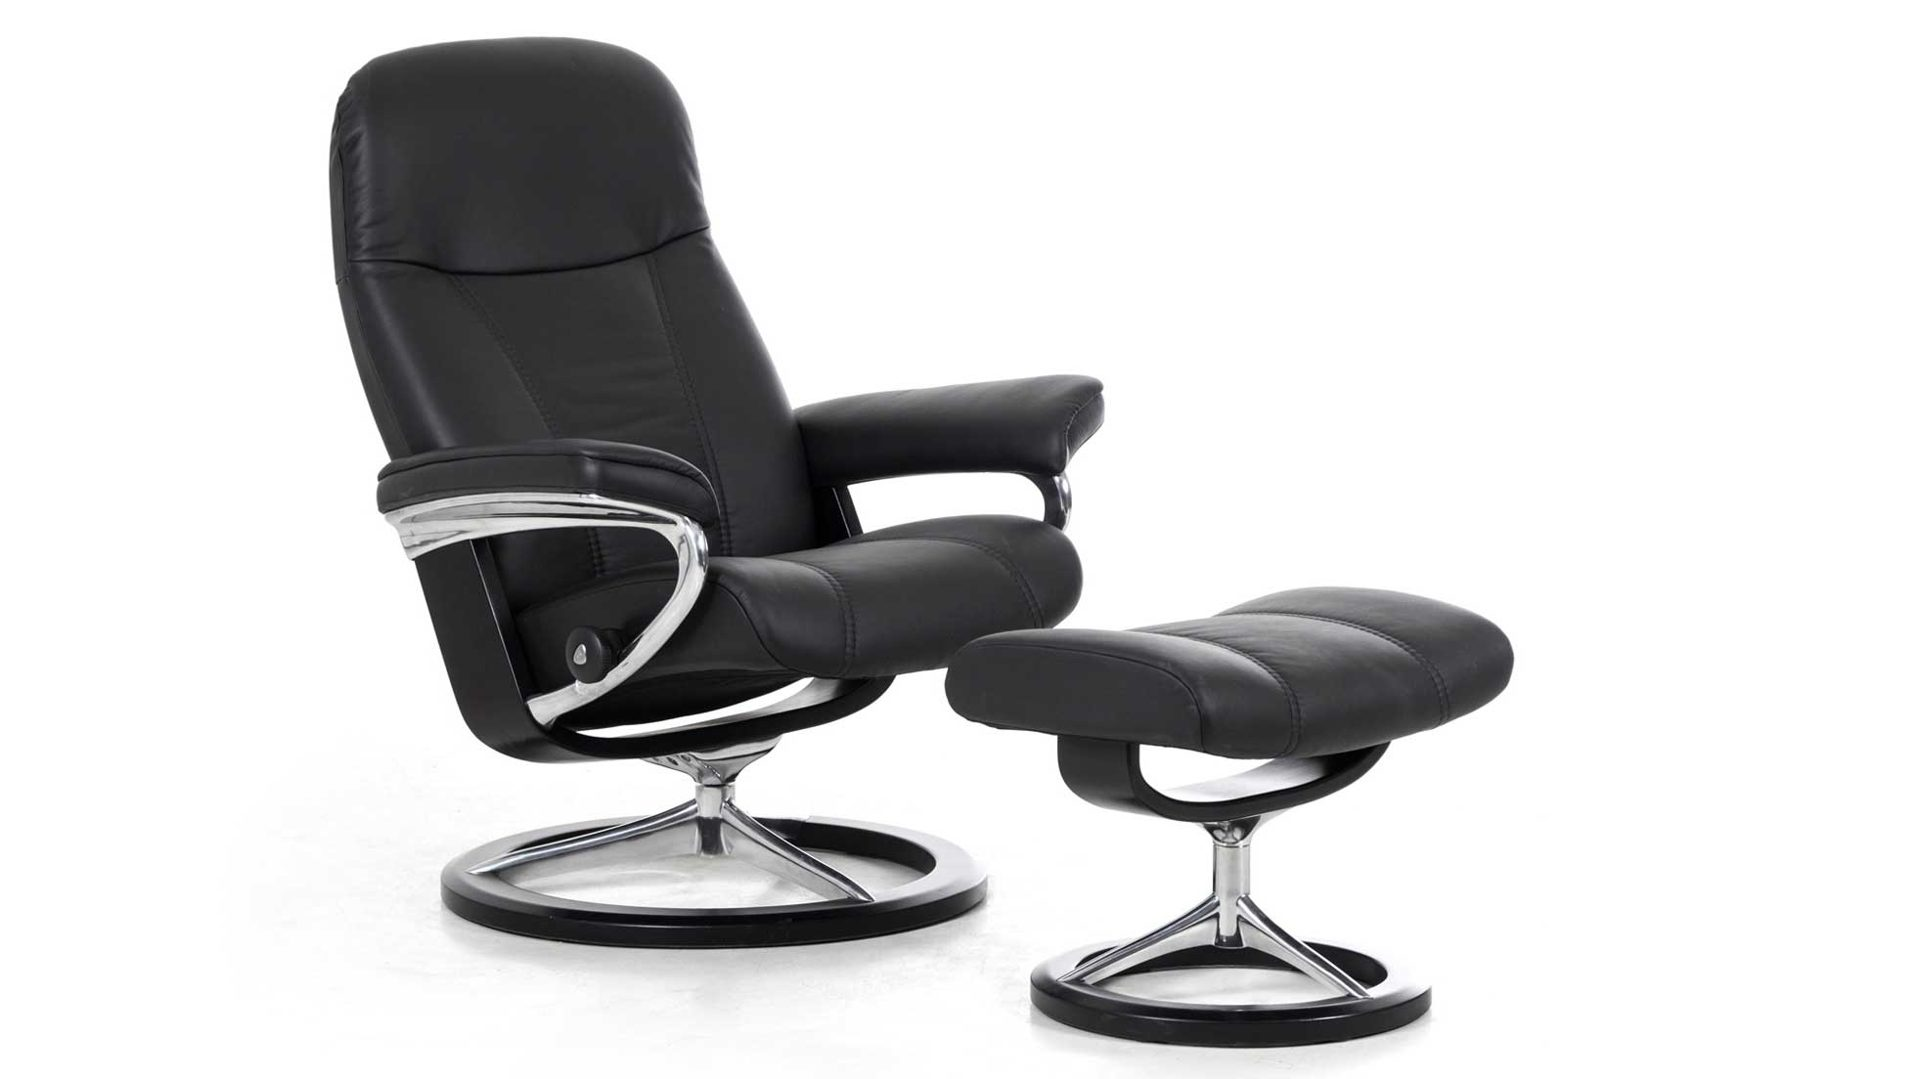 Stressless Ekornes Sessel Stressless Consul S Signature Relax Sessel Und Hocker Leder Small